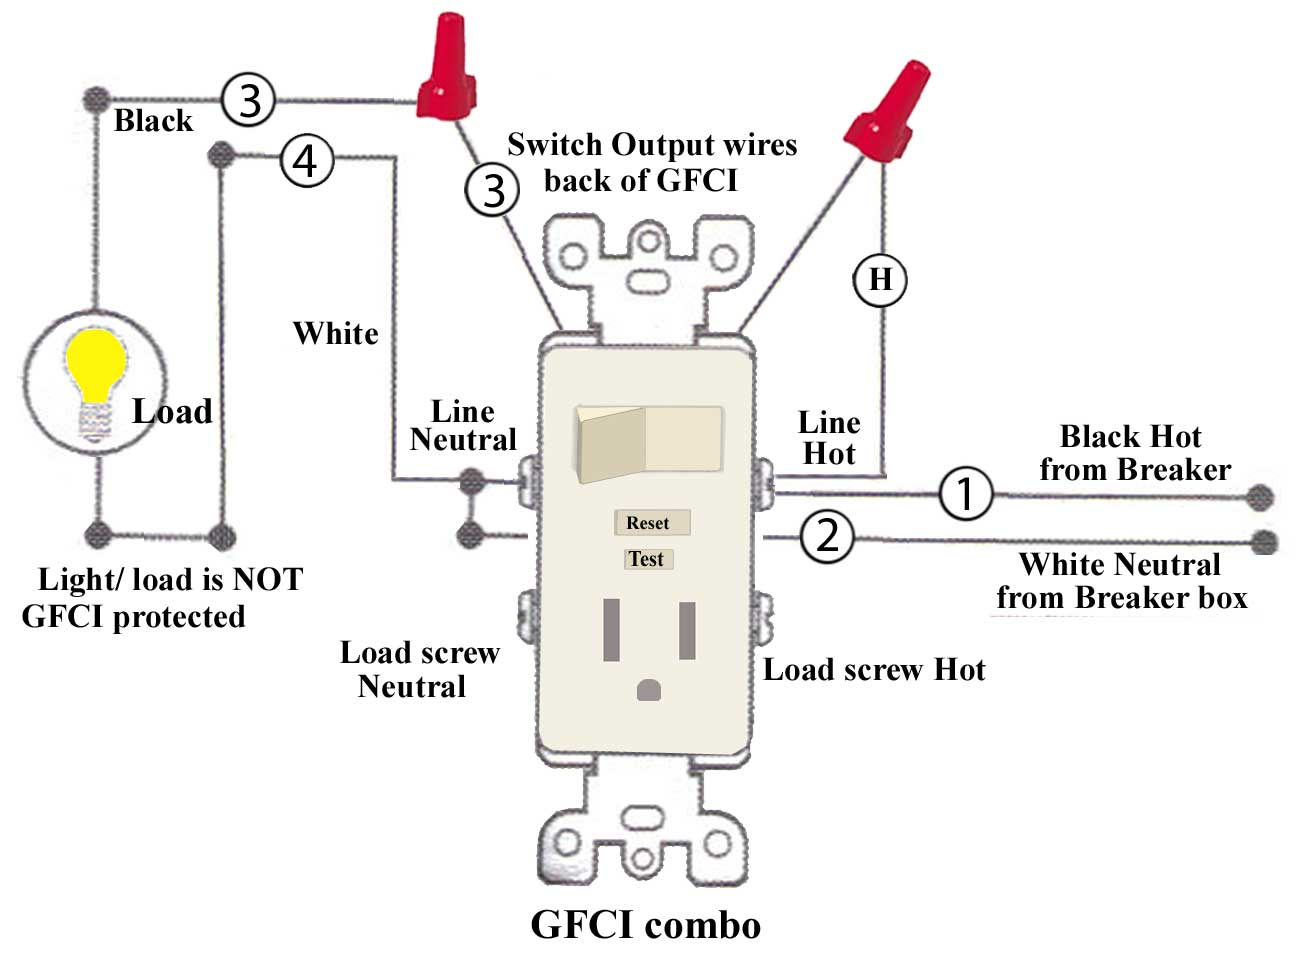 GFCI combo wiring 4 how to install and troubleshoot gfci combo switch receptacle wiring diagram at eliteediting.co